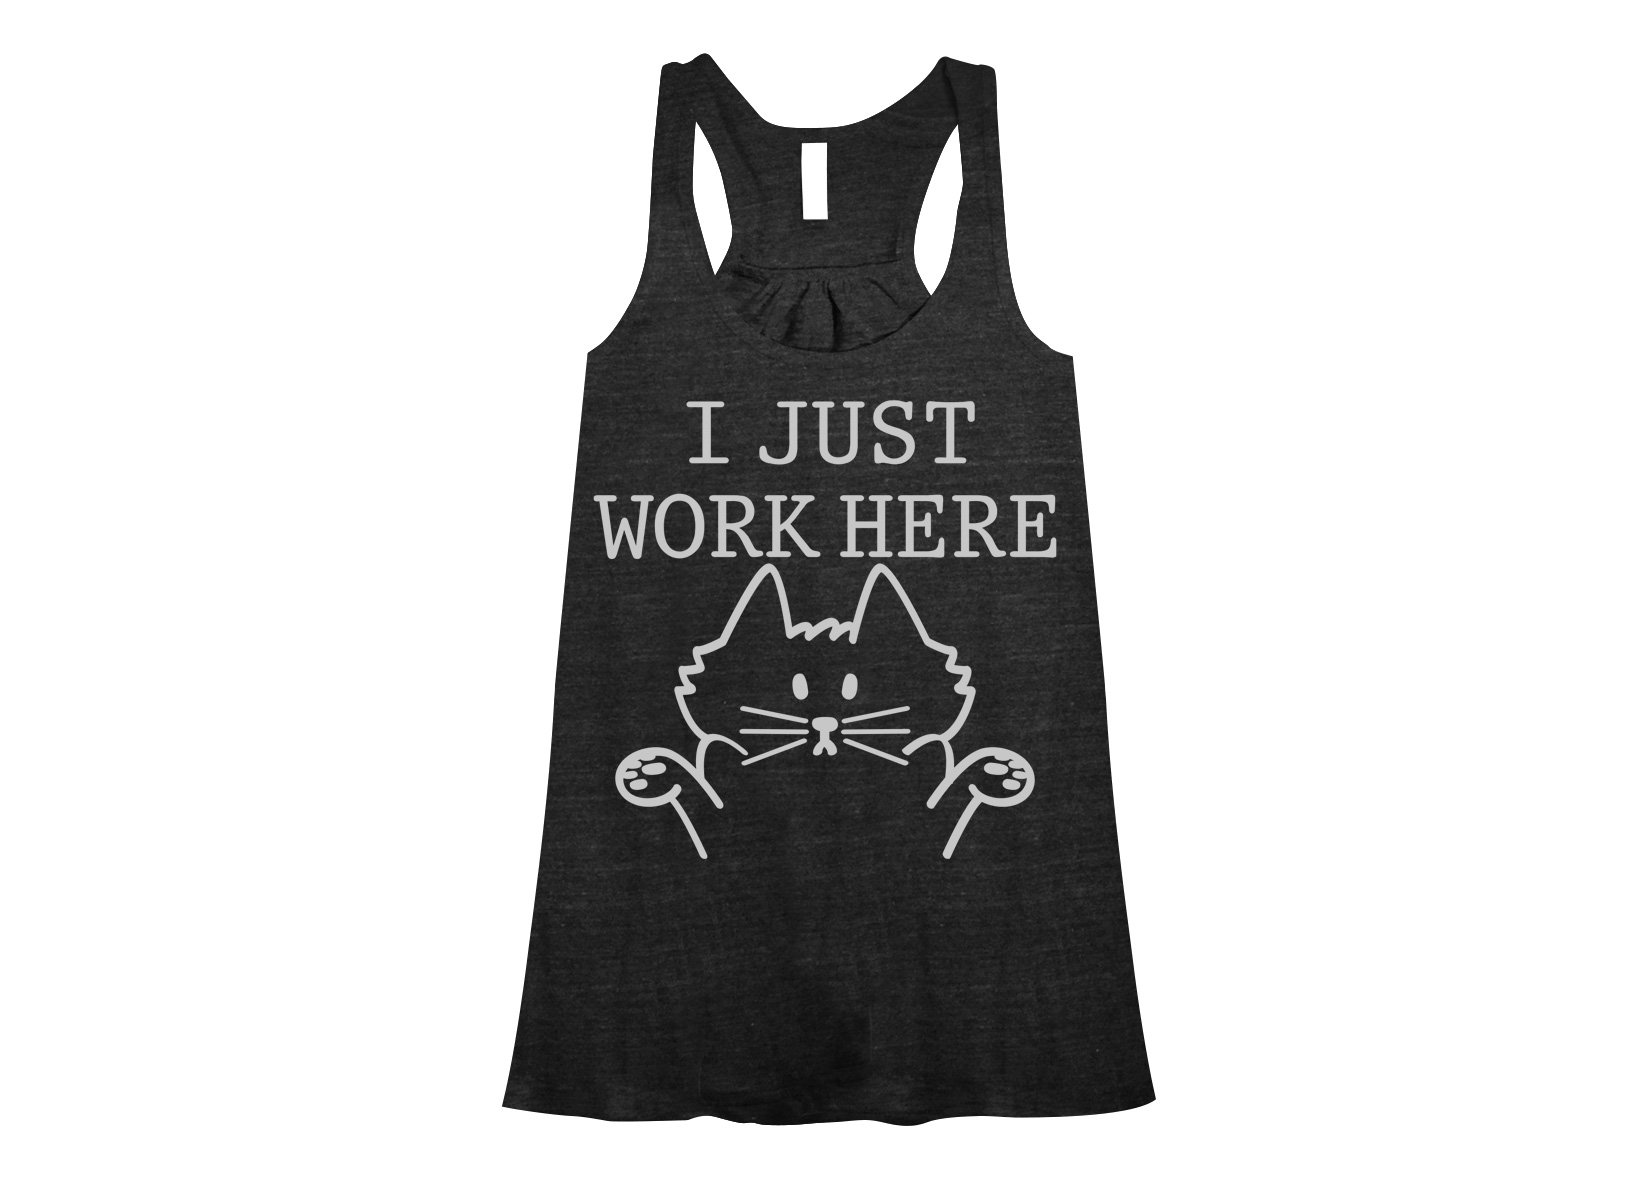 I Just Work Here on Womens Tanks T-Shirt